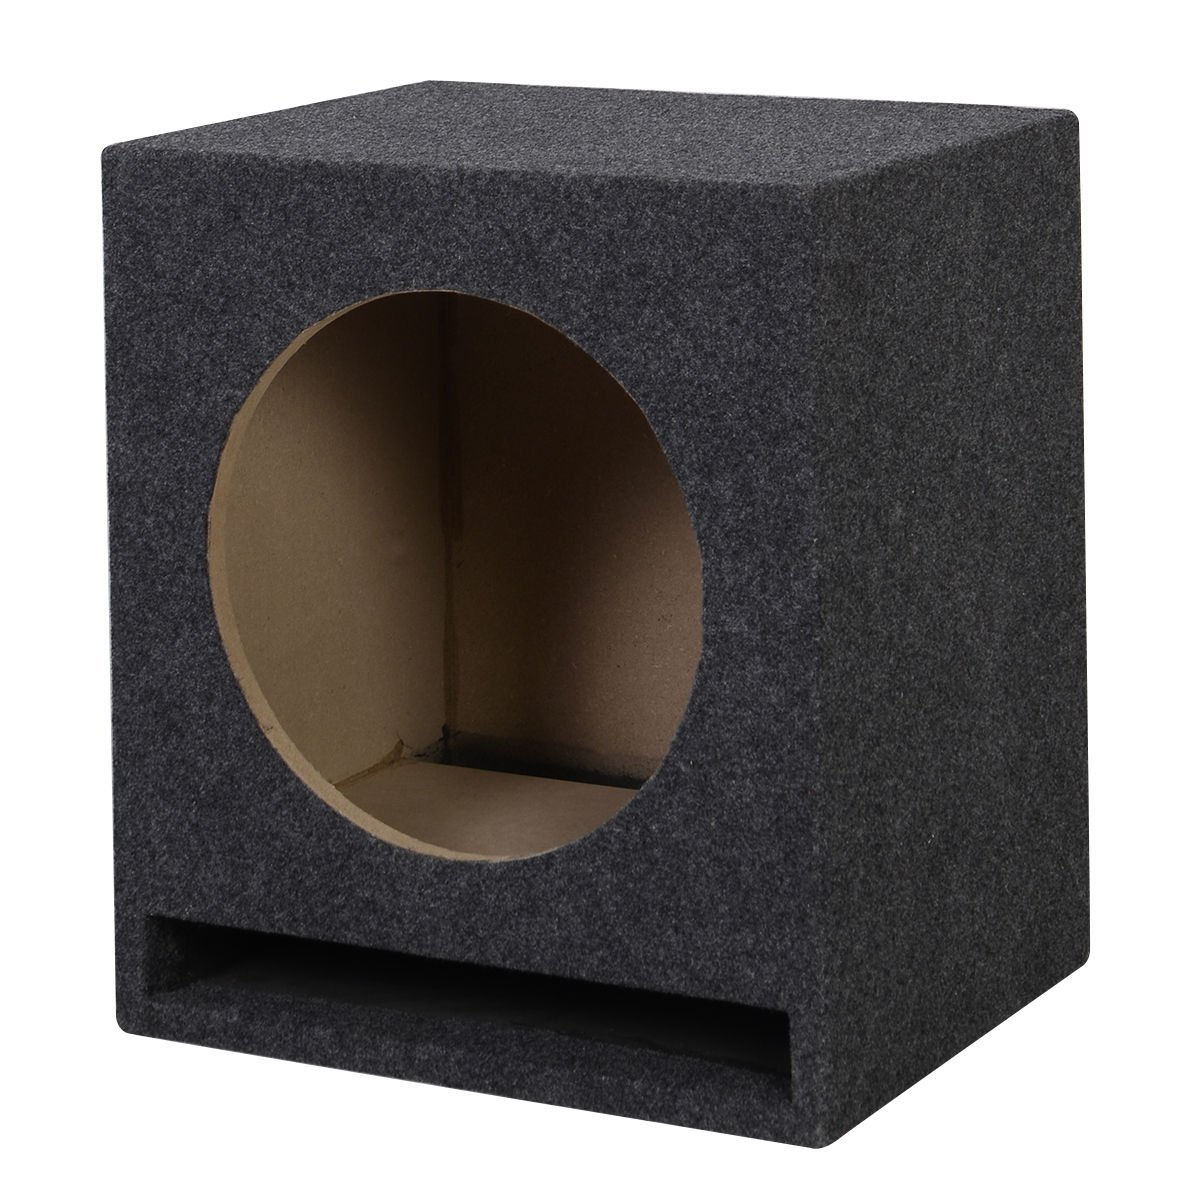 12 inch Single Car Audio Speaker Ported Vented MDF Subwoofer Enclosure Box 2.0